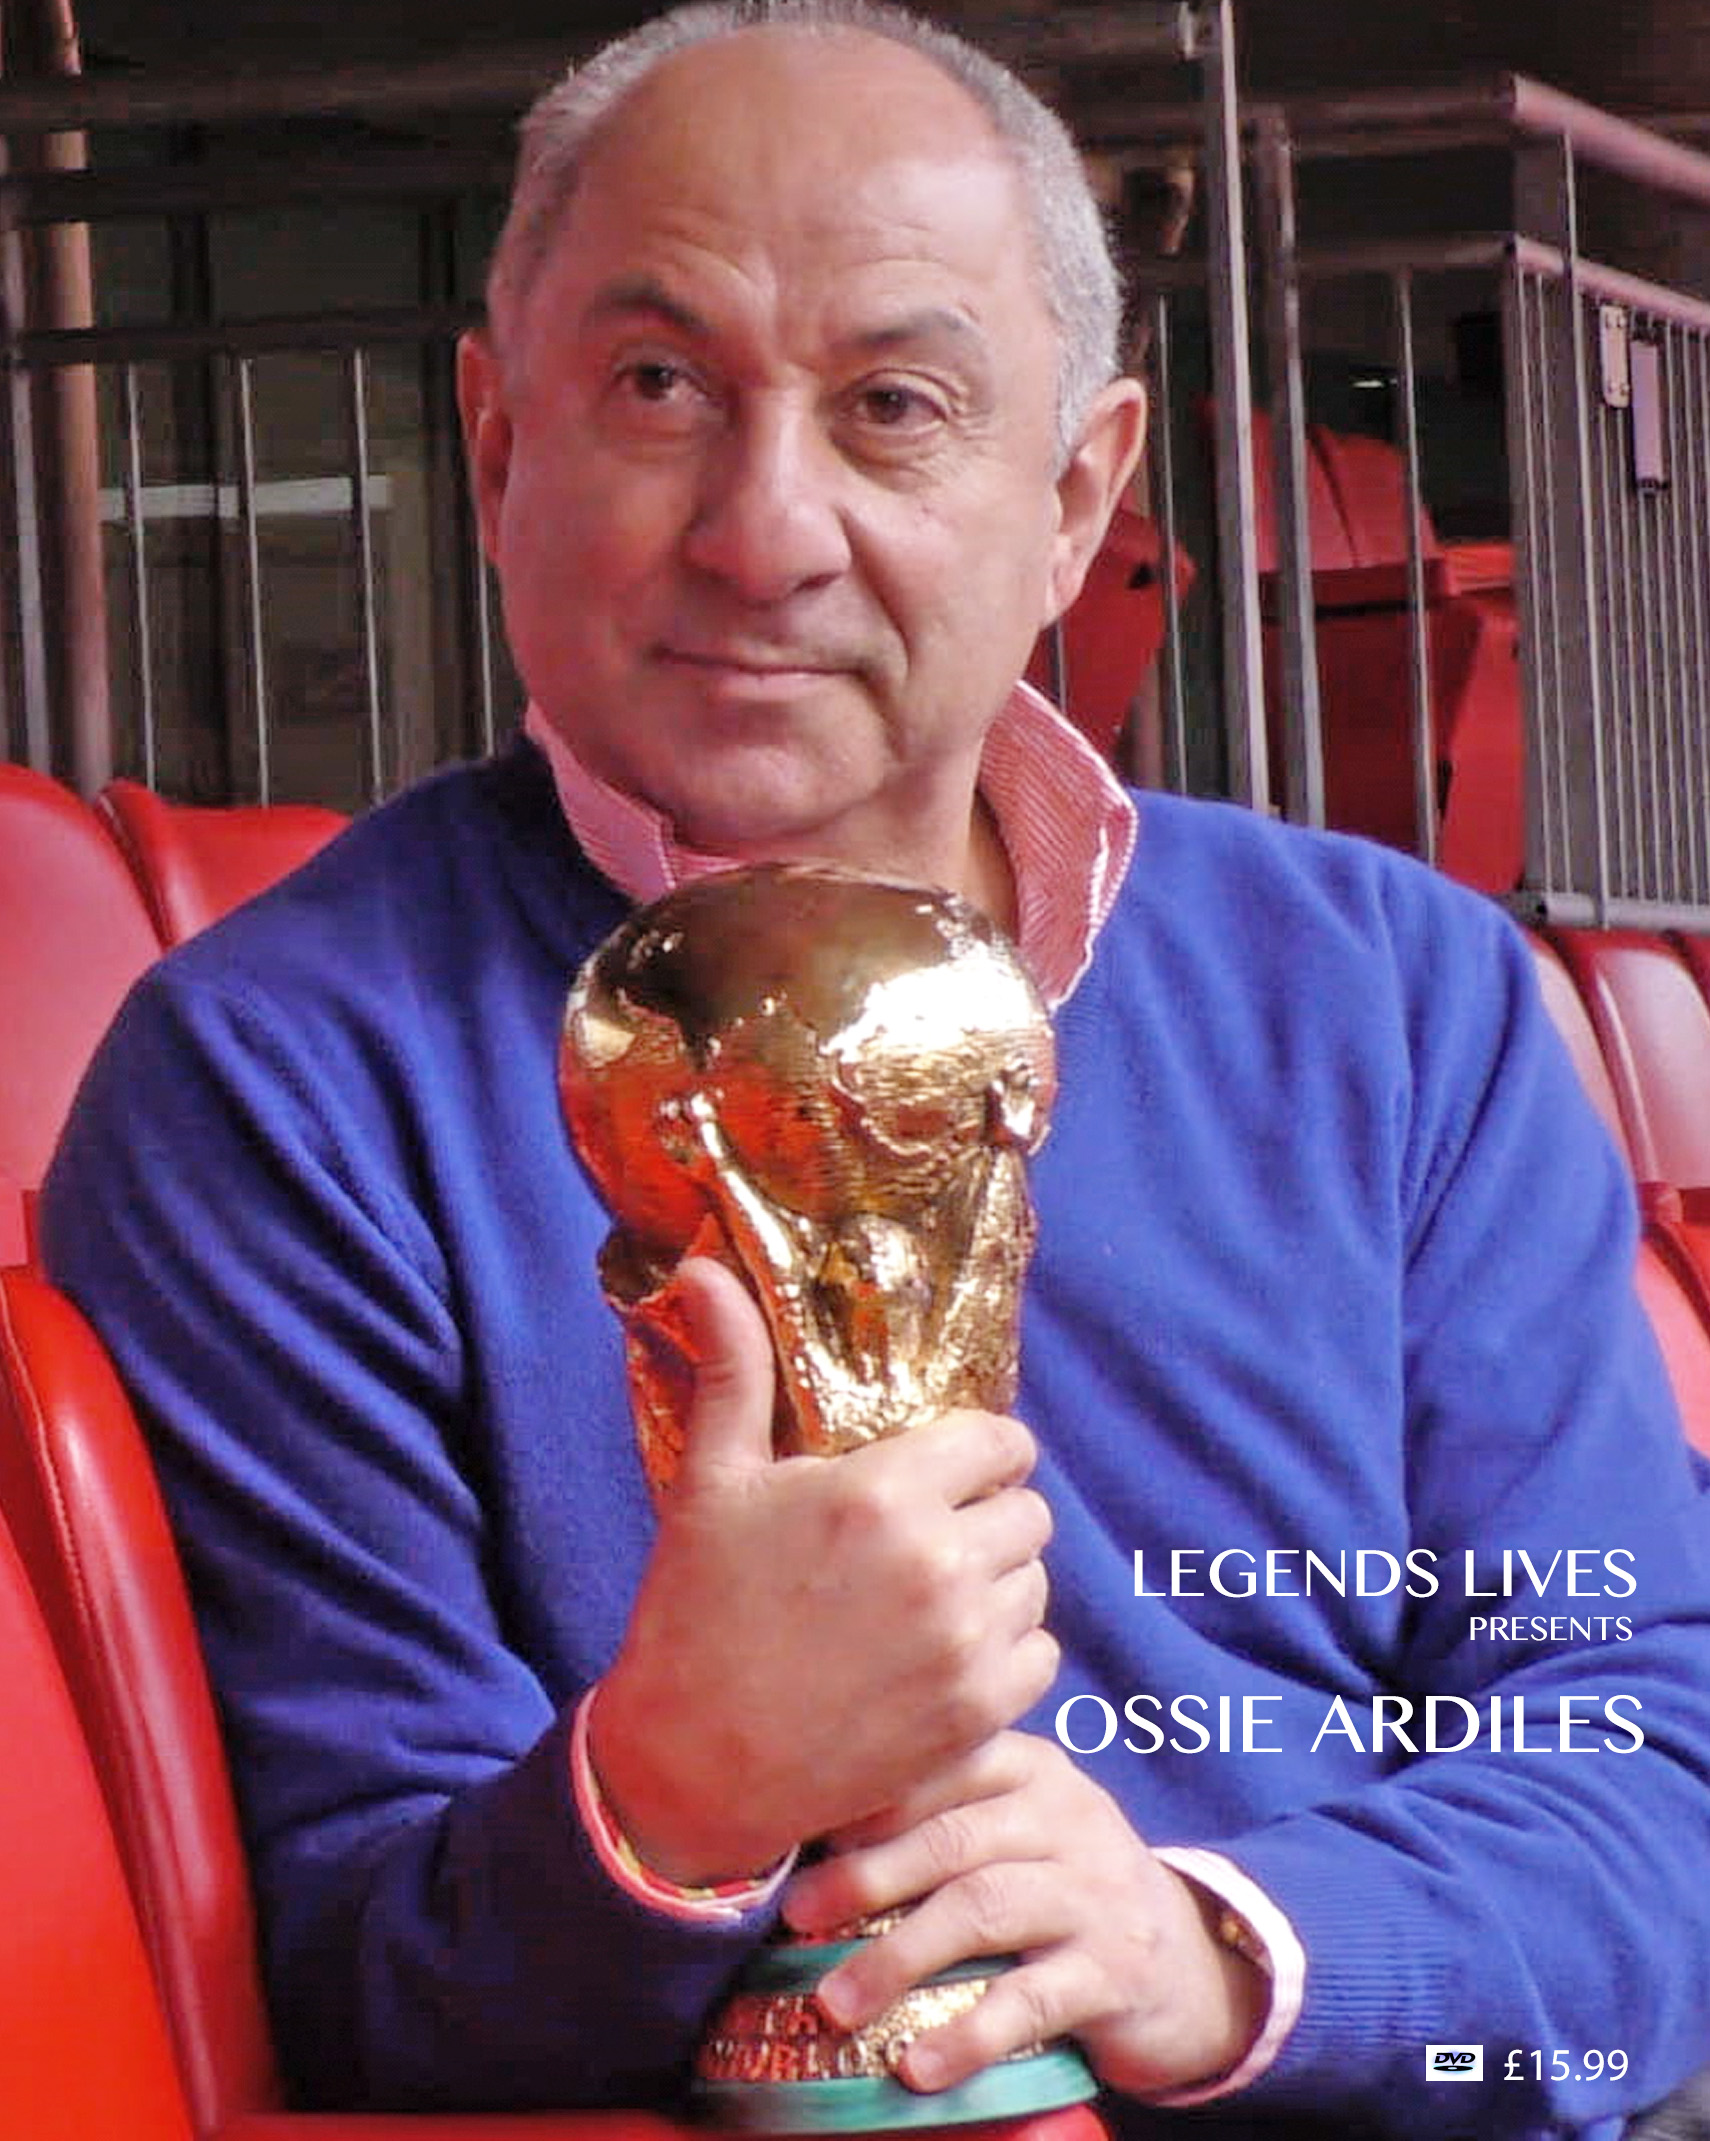 Ossie Ardiles Limited Edition DVD